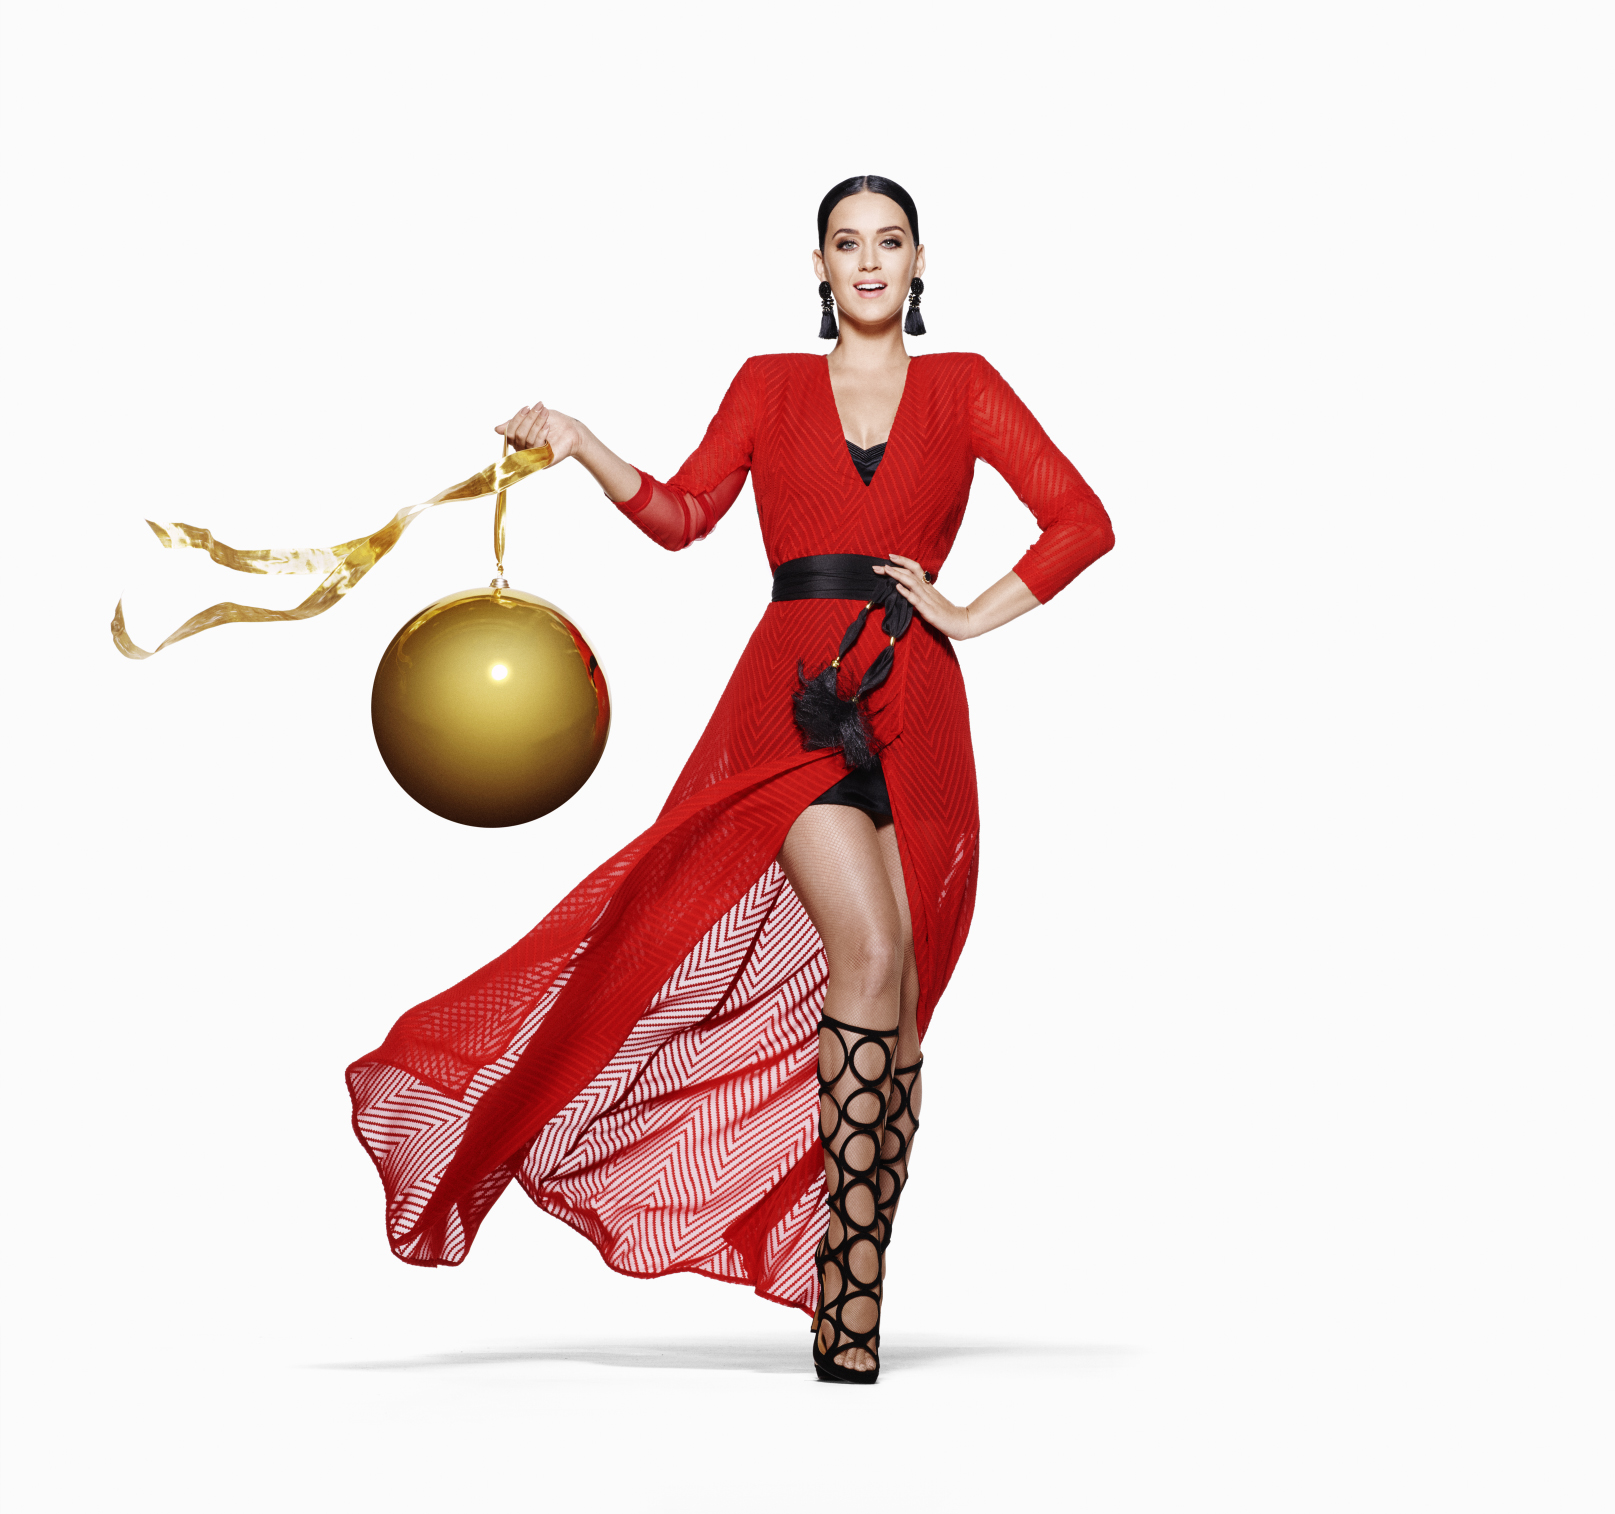 See Katy Perry modeling H&M's special holiday collection [GALLERY]